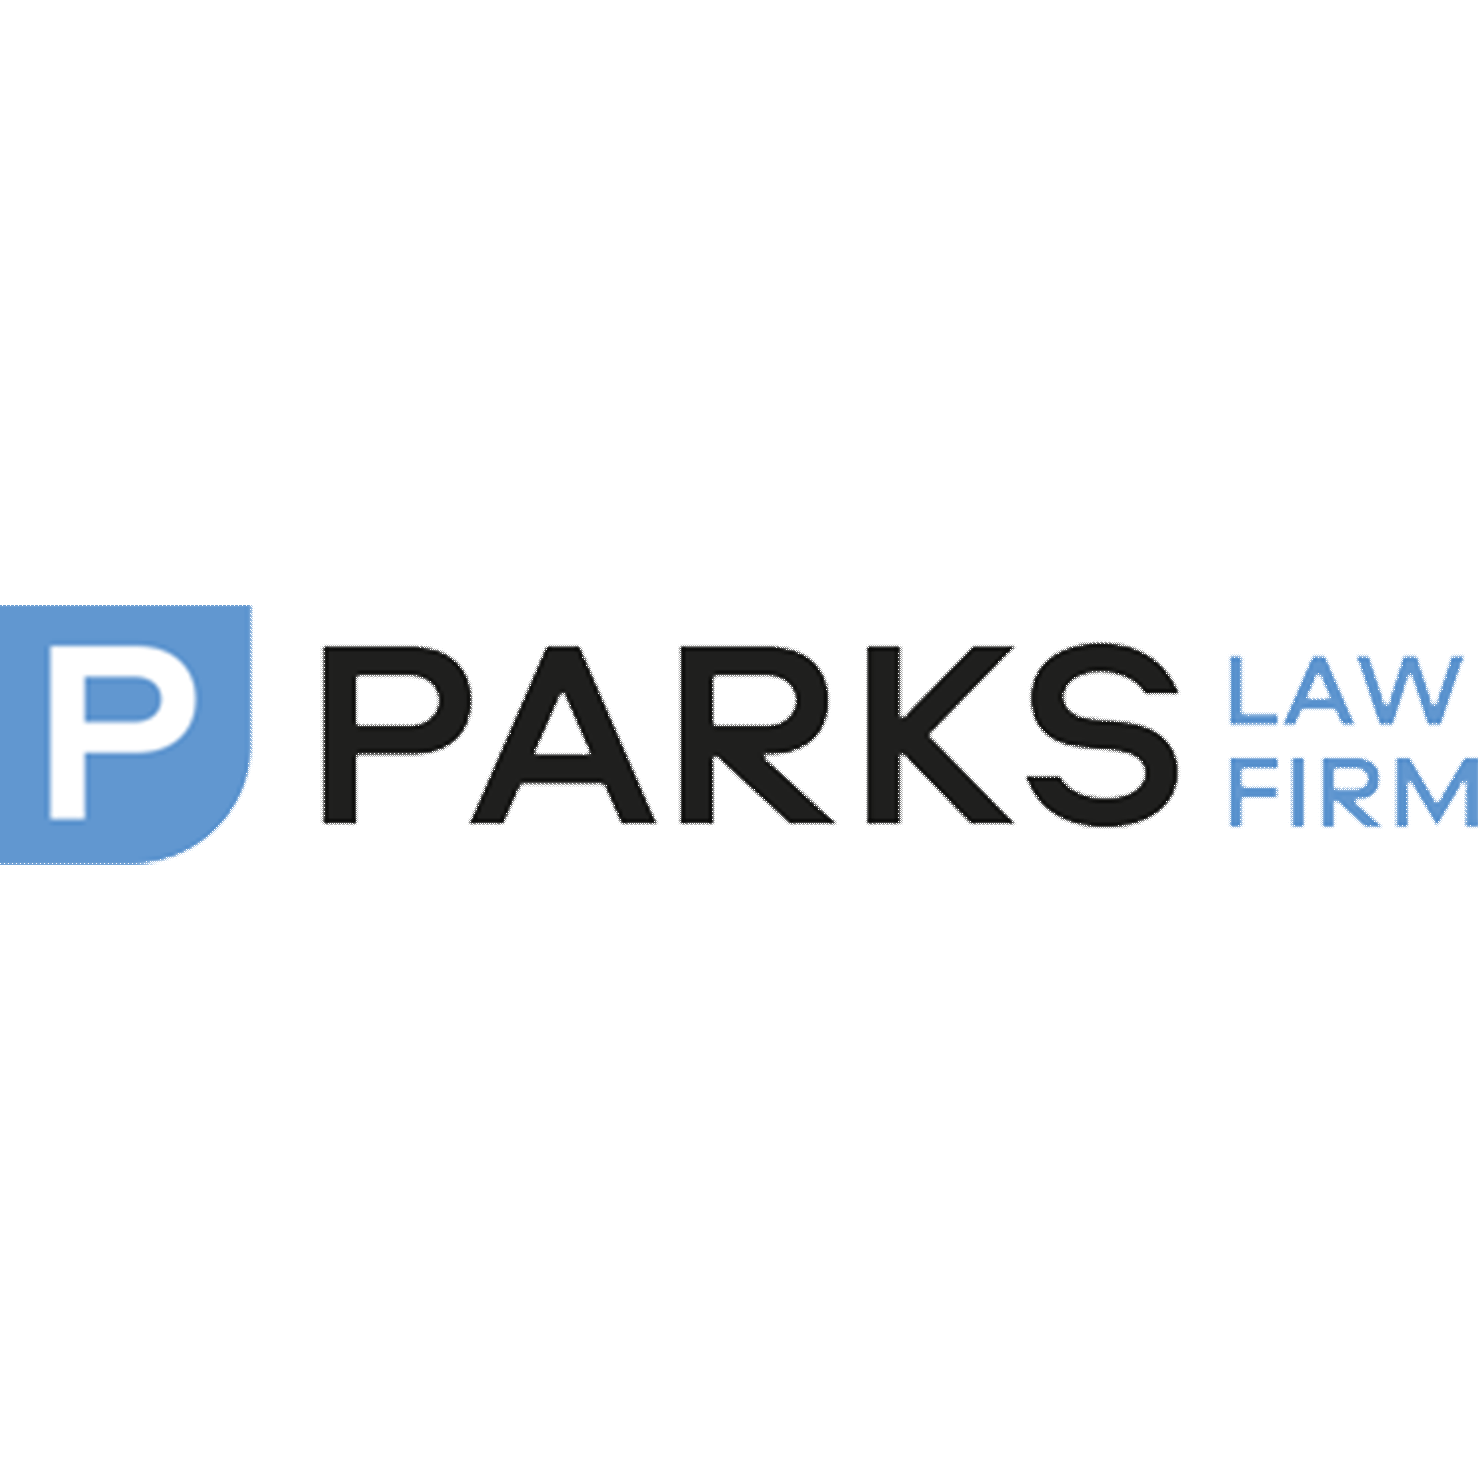 The Parks Law Firm